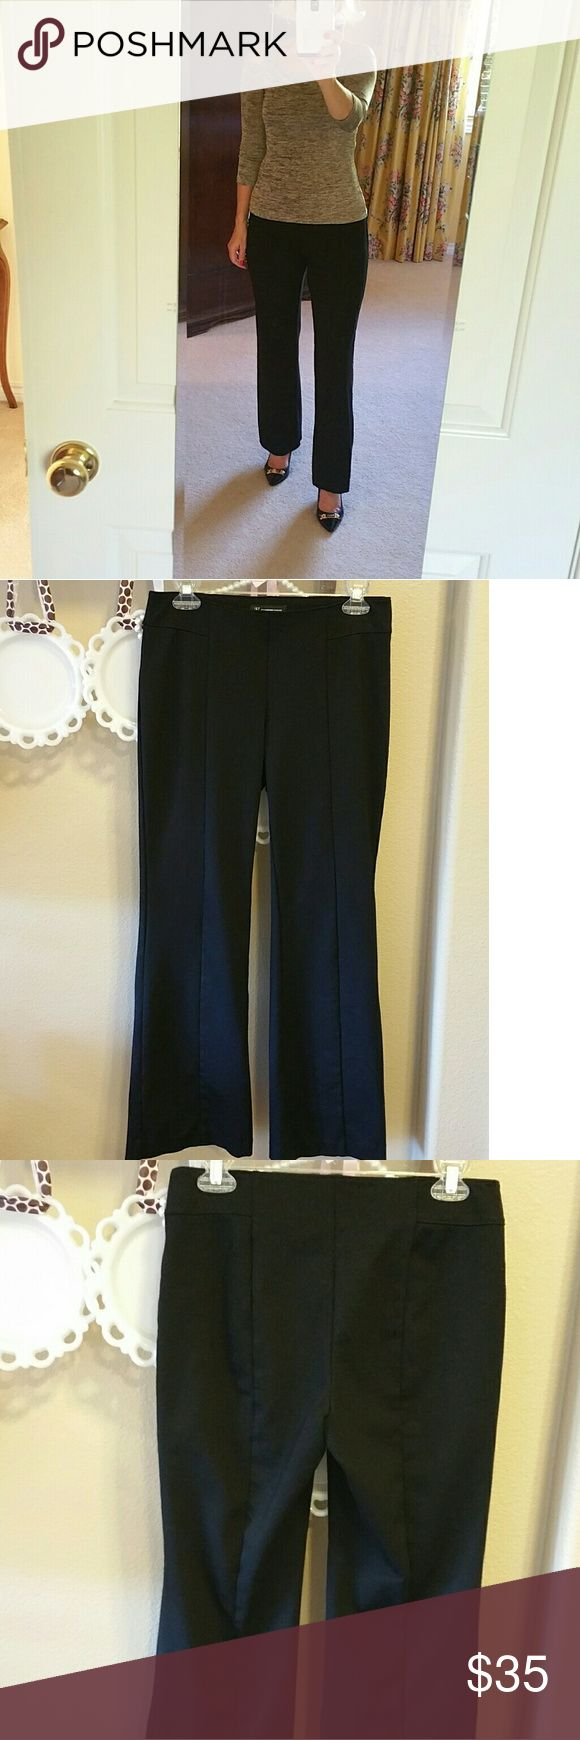 EUC INC Black Pull On Boot Cut Pants These EUC INC Black Pull On Boot Cut Pants have no closure for a smooth fit. They also have a front seam and a back seam for a really nice fit. The fabric is 60% rayon, 35% nylon, and 5% spandex. The rise is 22.5 in around and the length is 37 in from the waist to the bottom of legs. The waist is 15 in across and the waistband is 2 in wide. INC International Concepts Pants Boot Cut & Flare